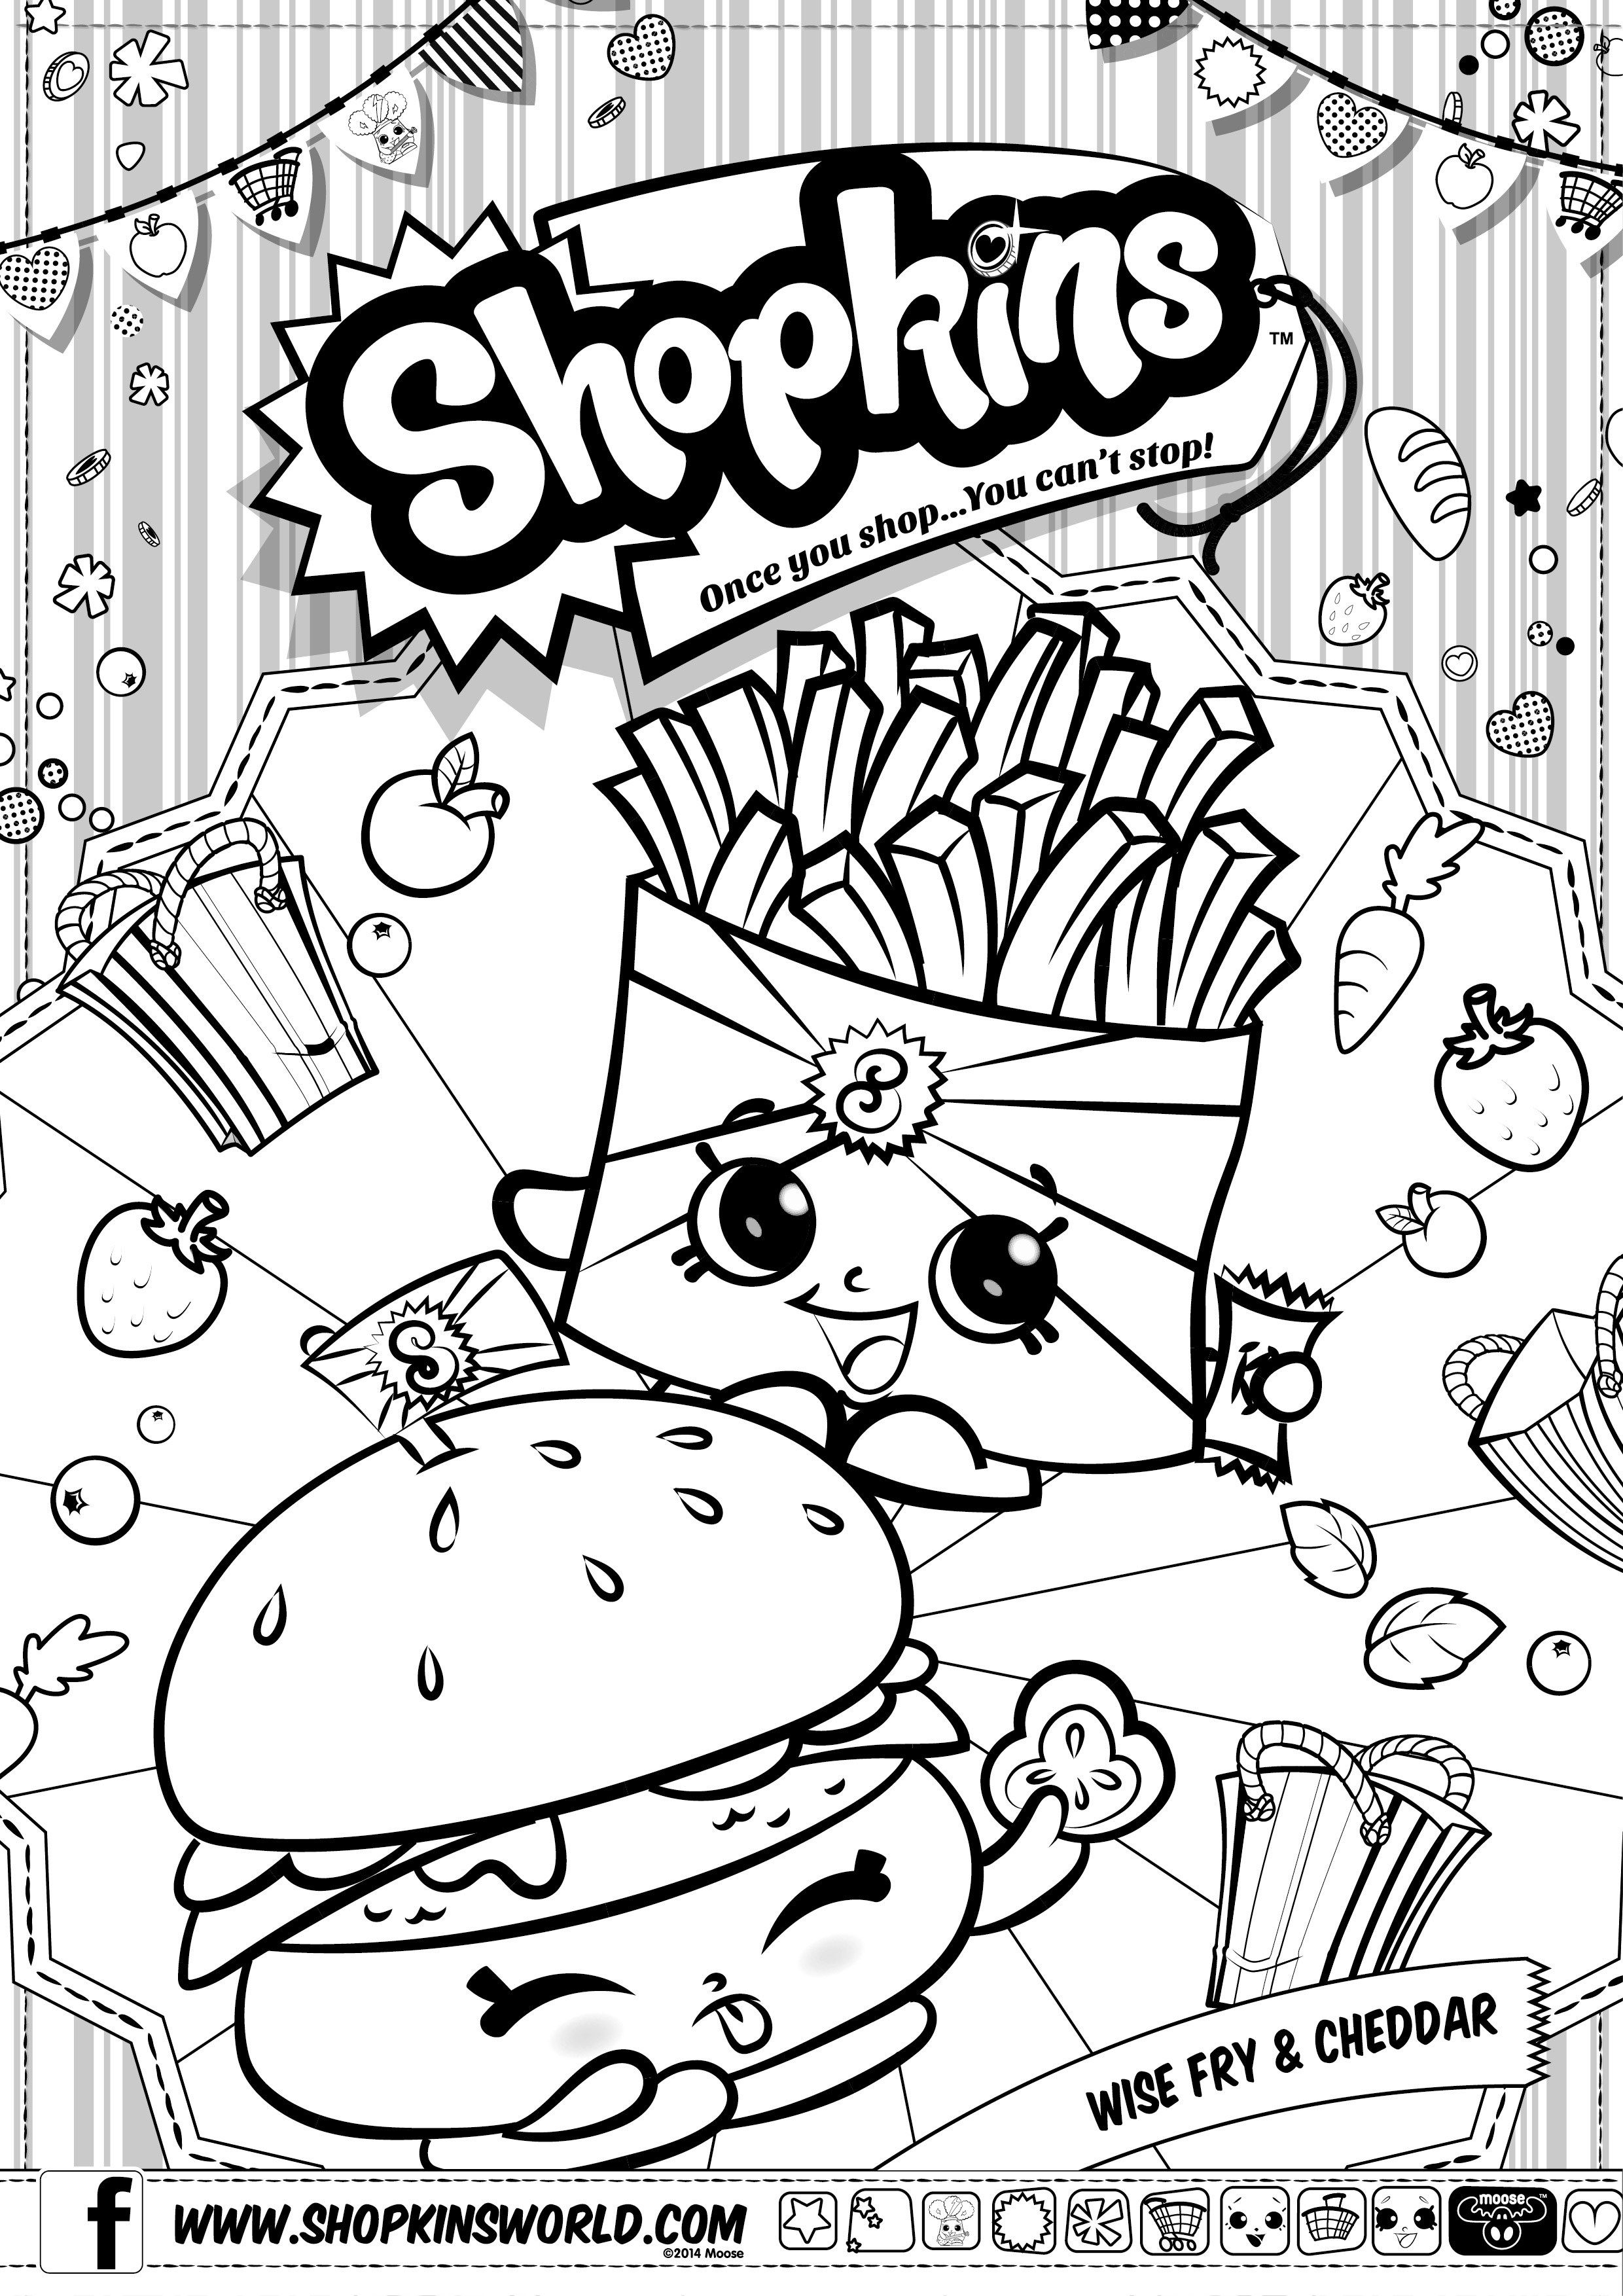 Shopkins Coloring Pages Season 3 Wise Fry Cheddar Party